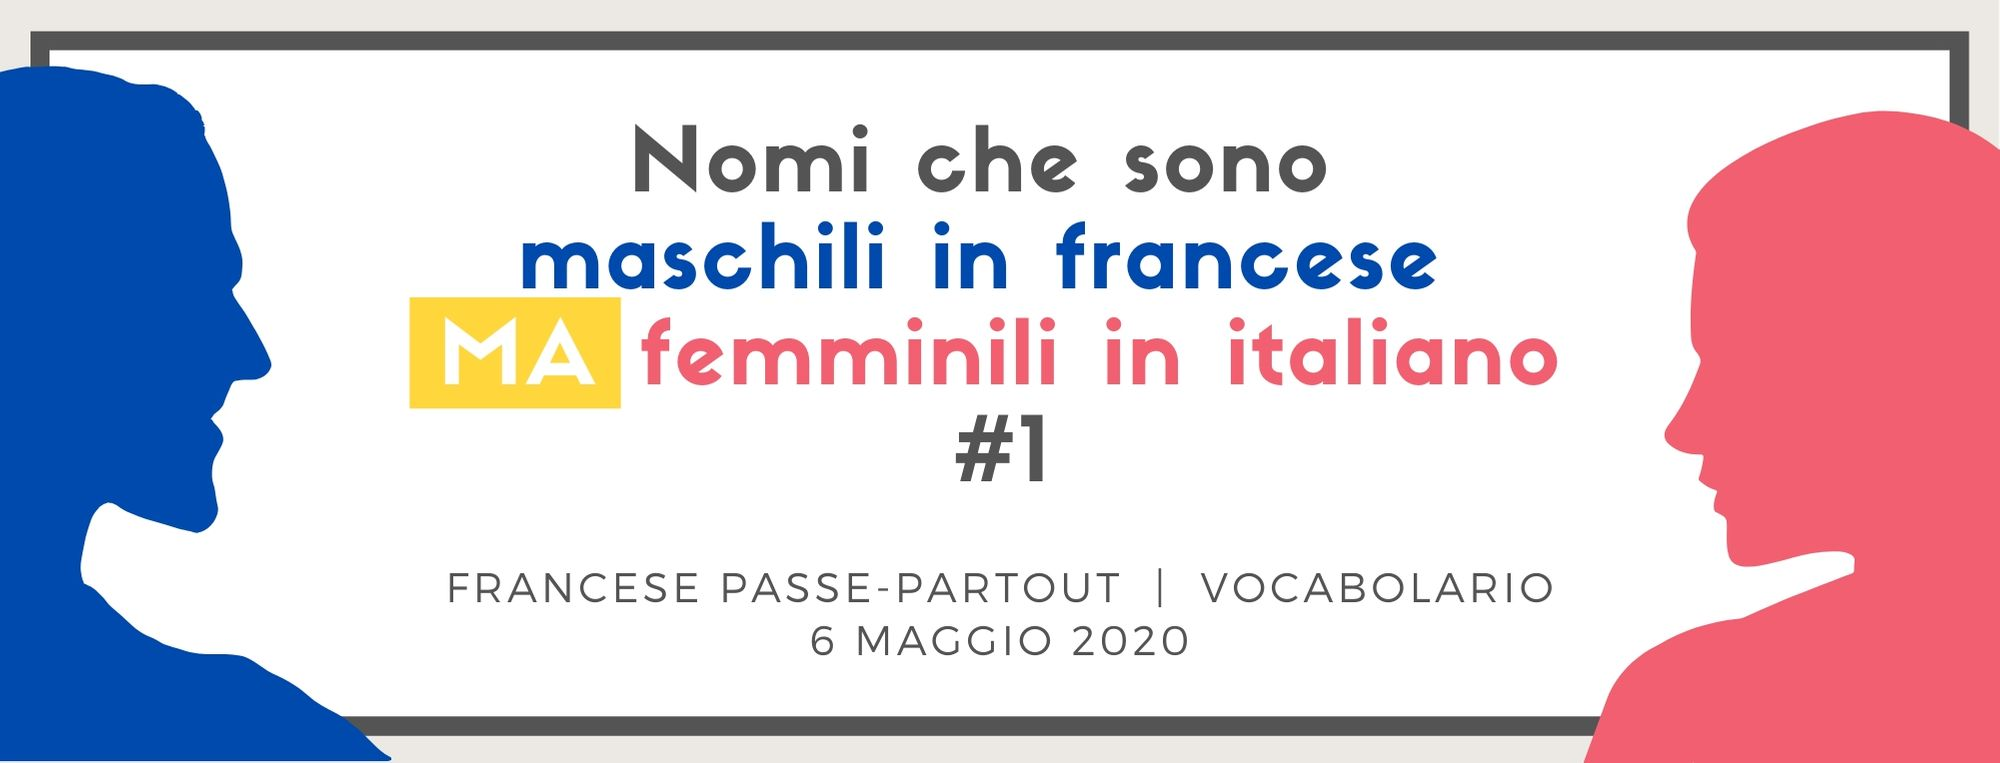 nomi maschili in francese ma femminili in italiano